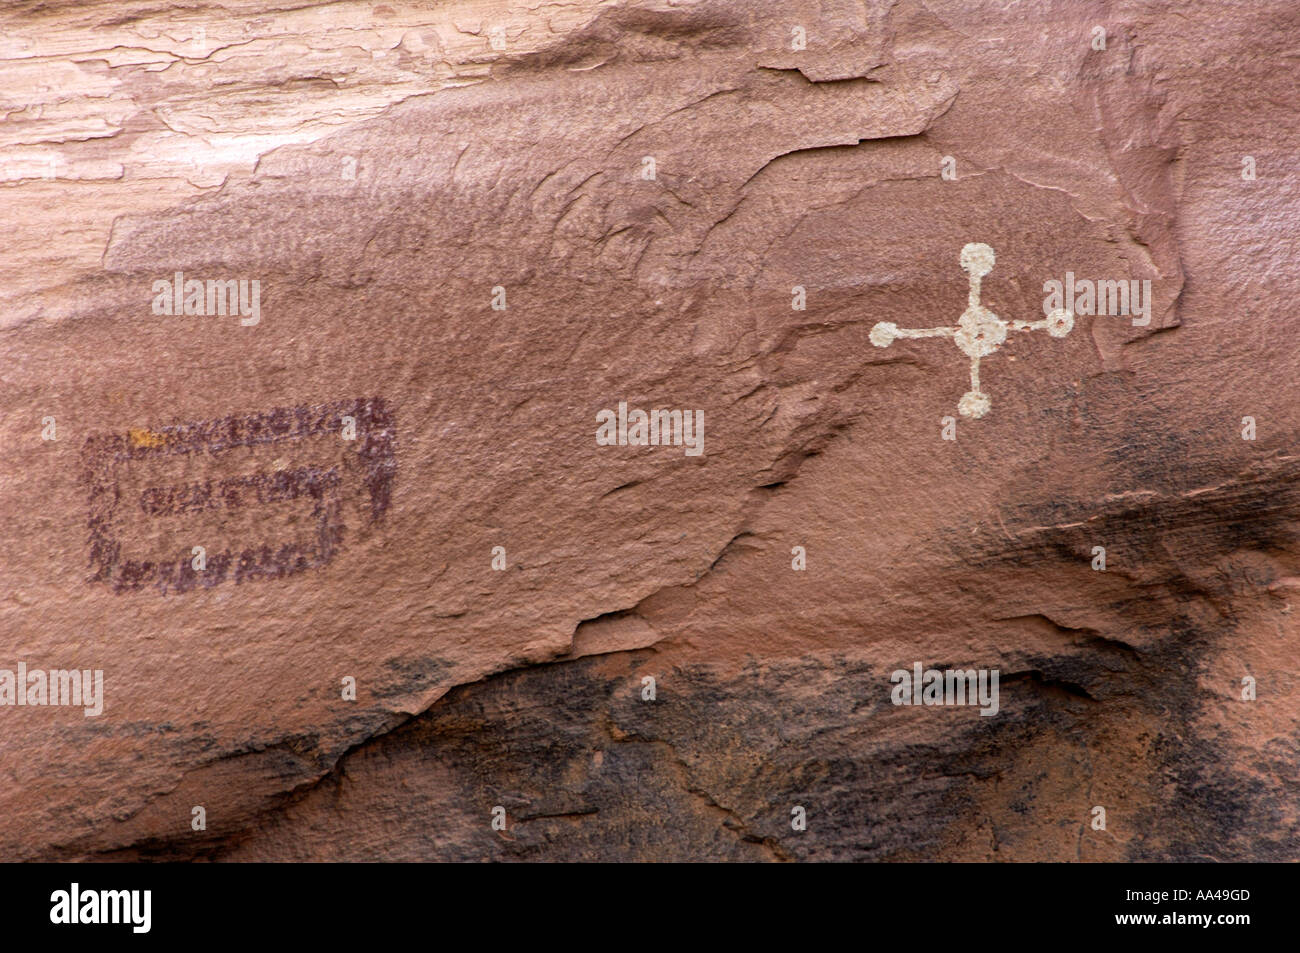 Anasazi or Ancestral Puebloan petroglyphs on cliff dwellings of Canyon de Chelly Arizona. Digital photograph - Stock Image